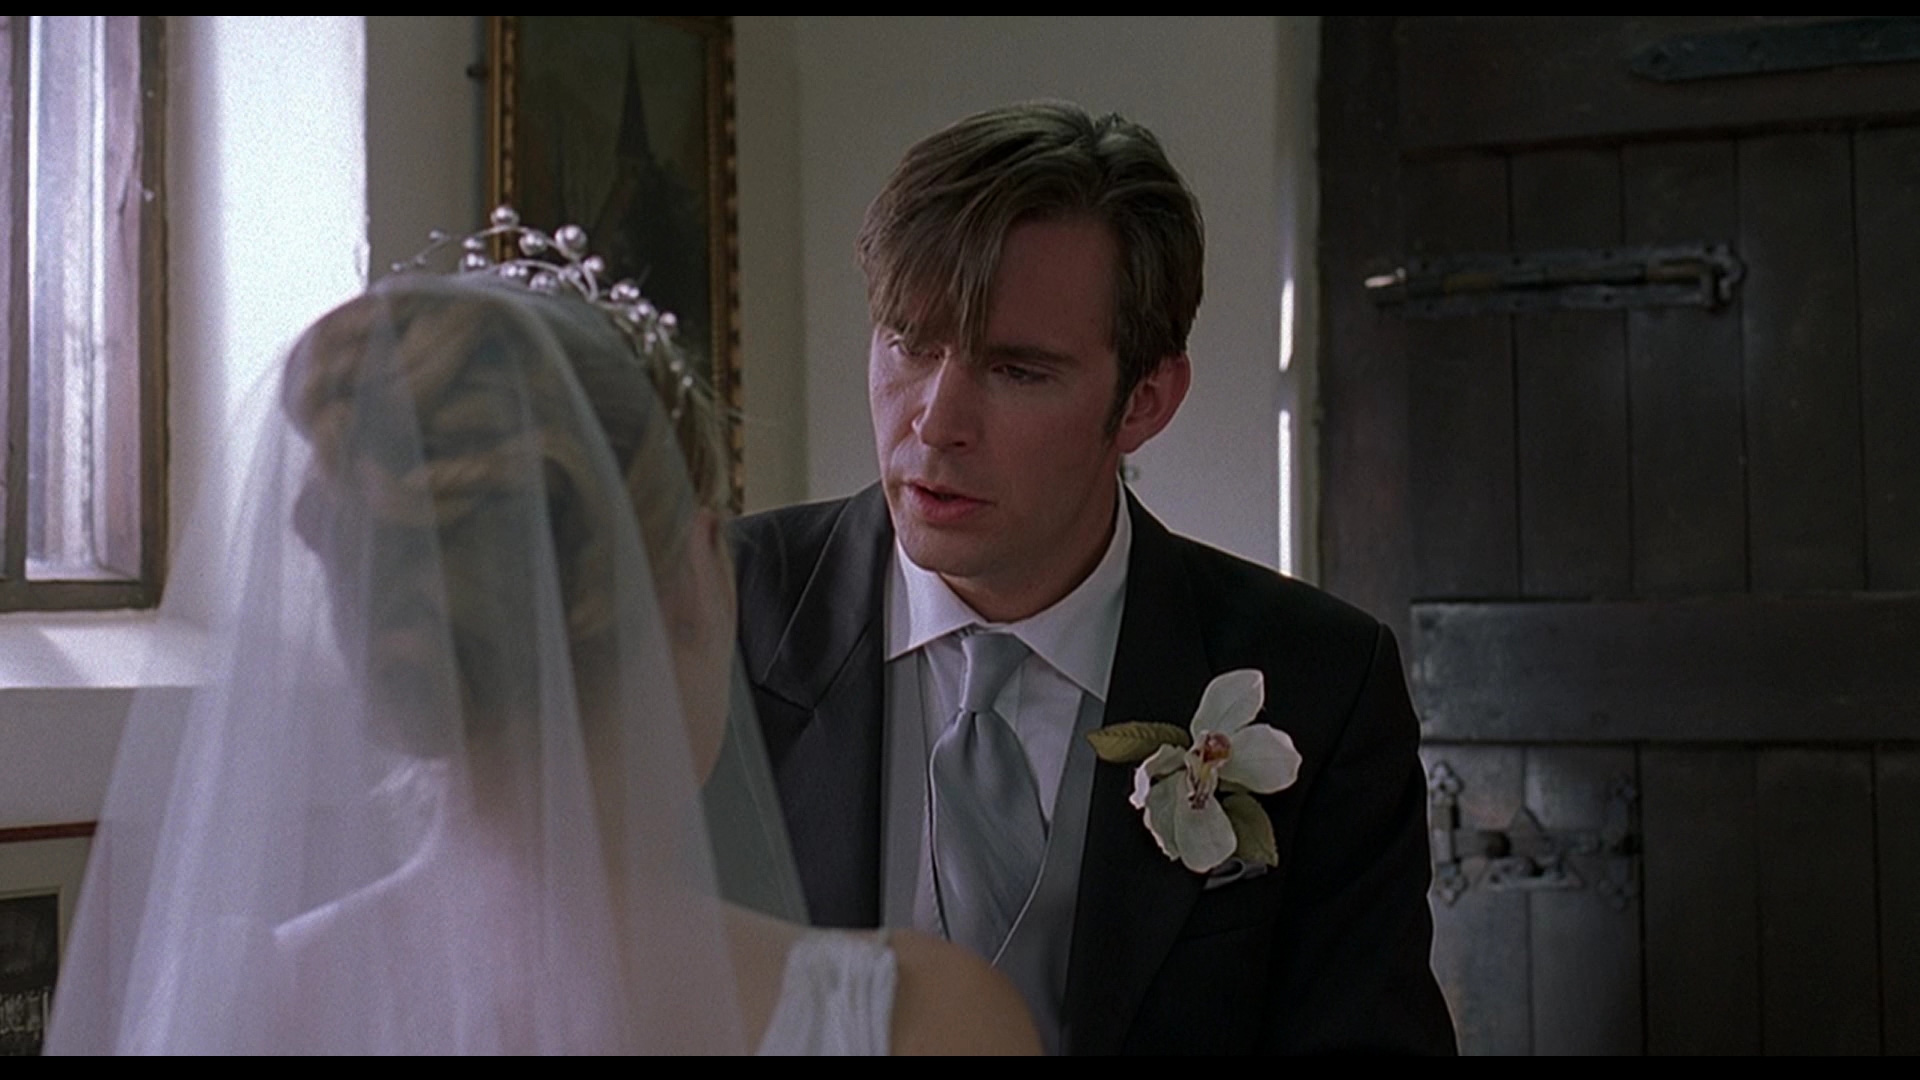 The Wedding Date (2005) Full Movie Online Stream | Movieplay